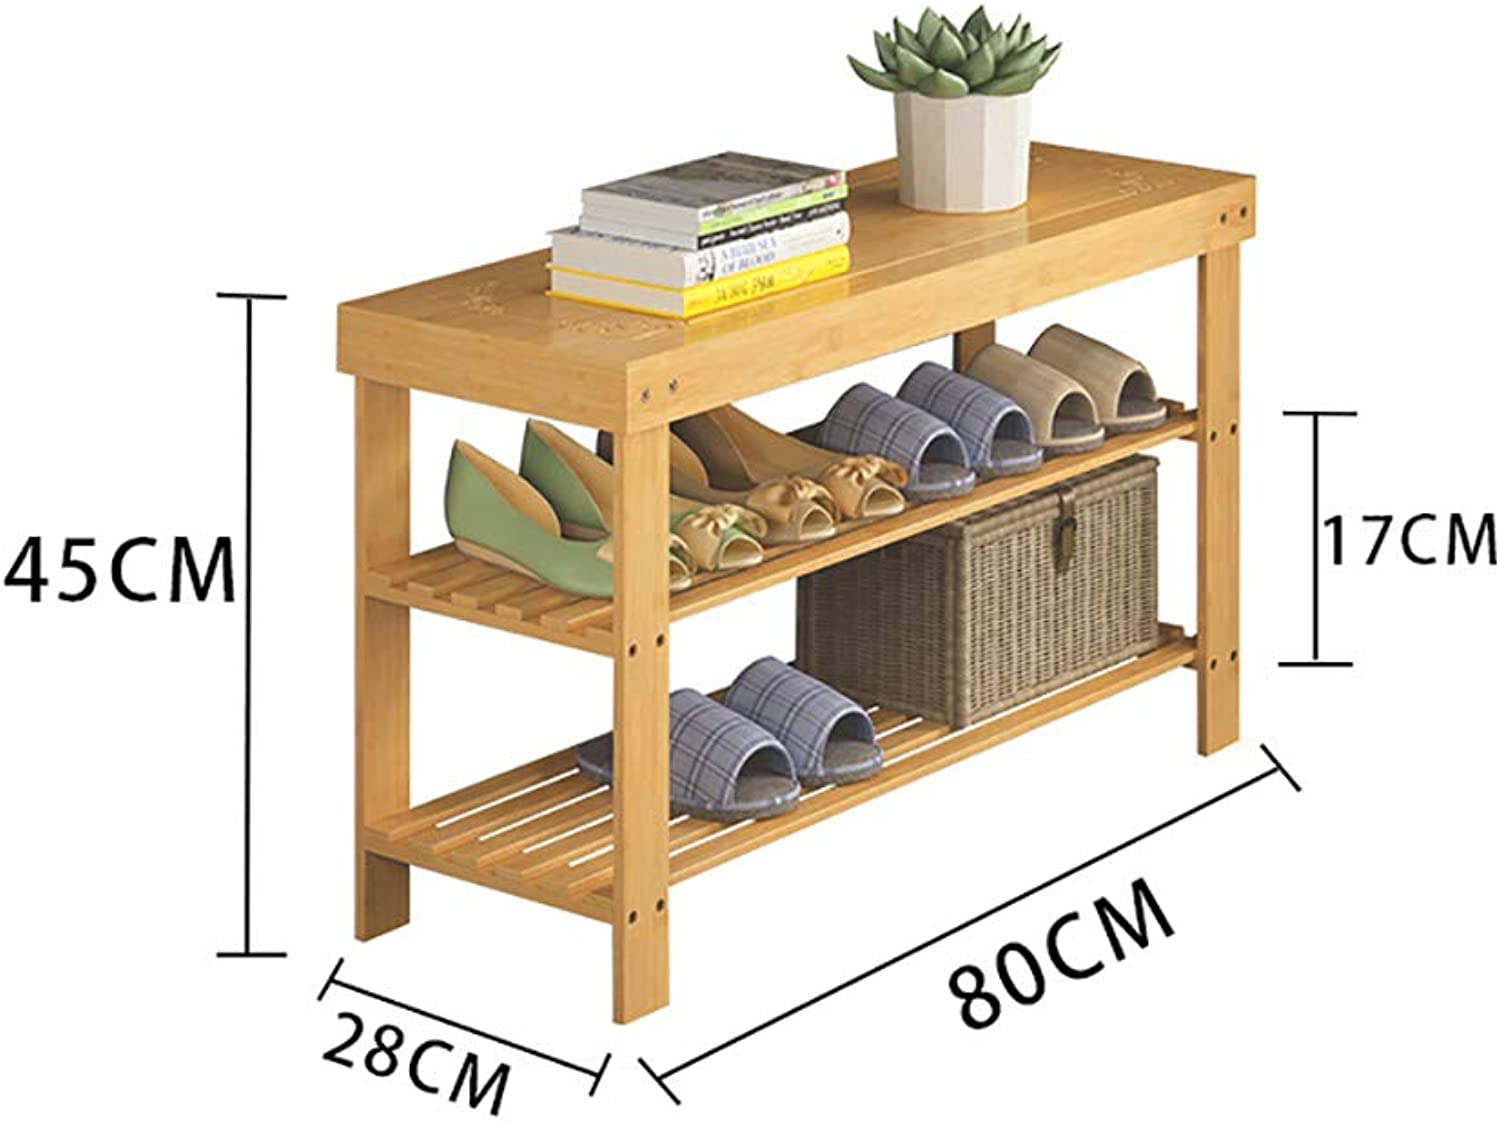 shoes Bench Organizing Rack Bamboo shoes Shelf Simple Multi-Layer dustproof Multi-Purpose shoes Change shoes Bench Economy Home Dormitory Shelves (Size   80  28  45cm)